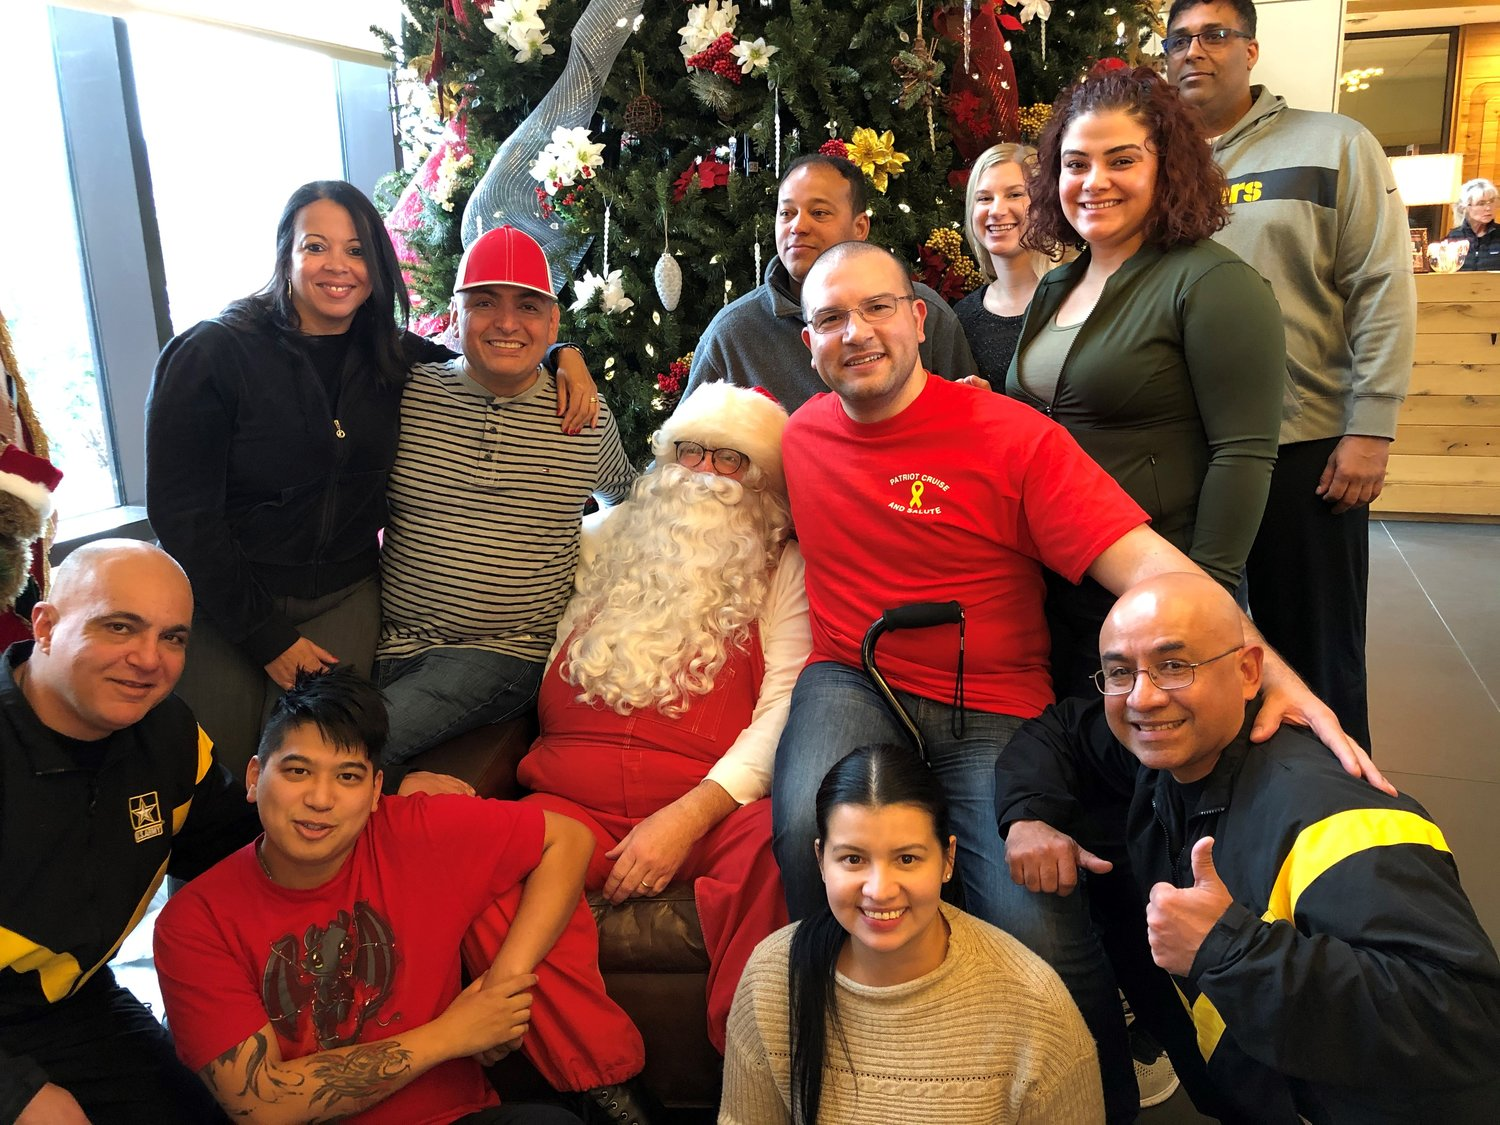 A group of wounded warriors from Fort Belvoir, in Virginia, and their family members visited with a firefighter Santa Claus during Lynbrook and other Nassau County firefighters' visit to the wounded at Christmas time.